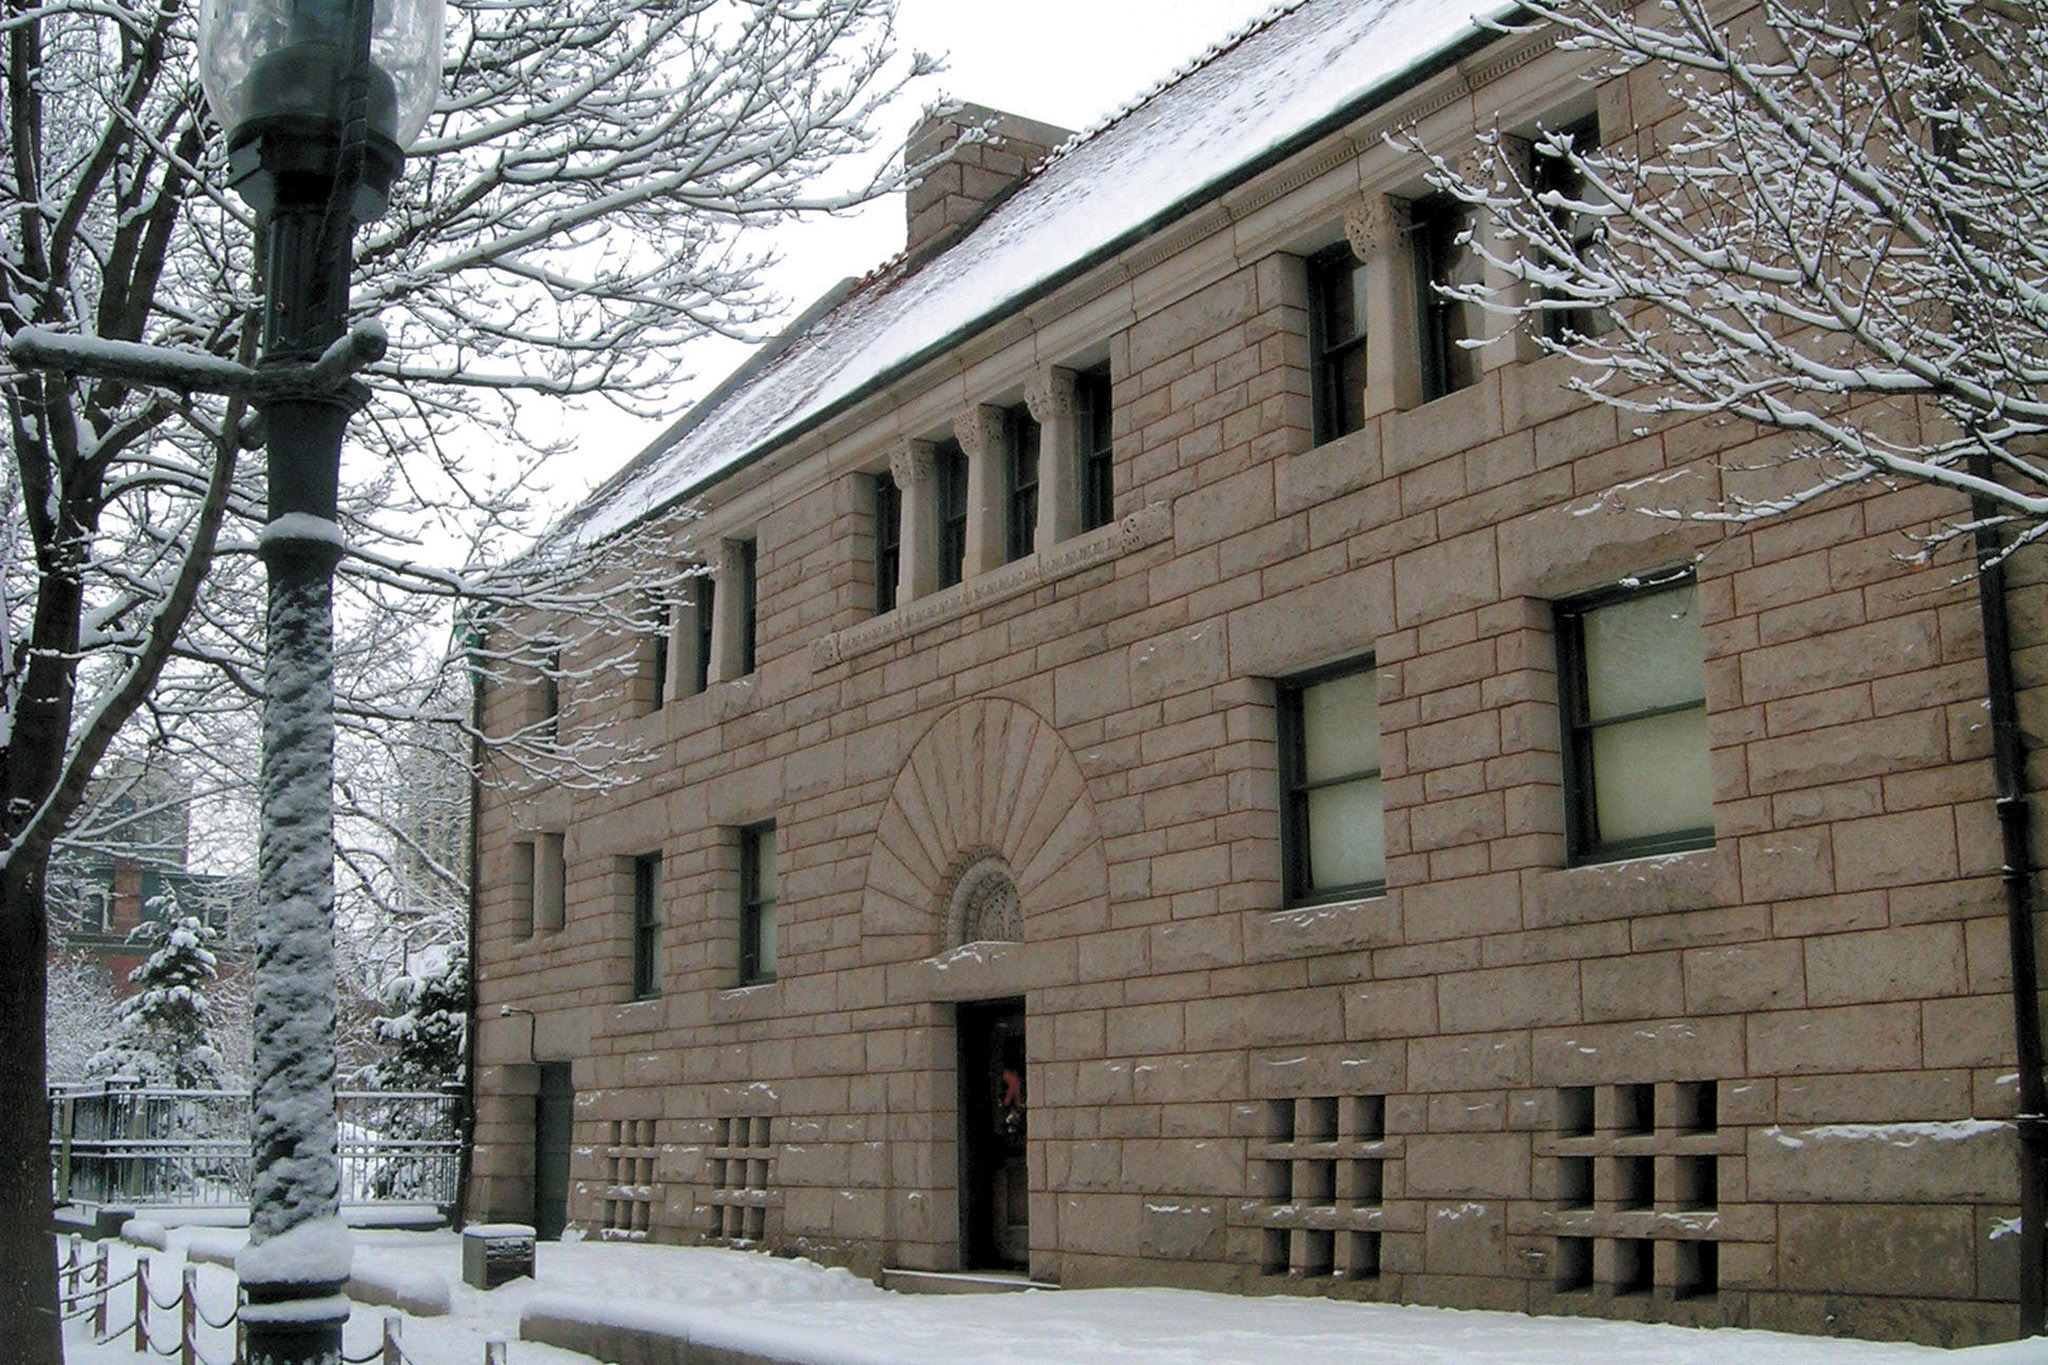 Free museum days in chicago for Glessner house